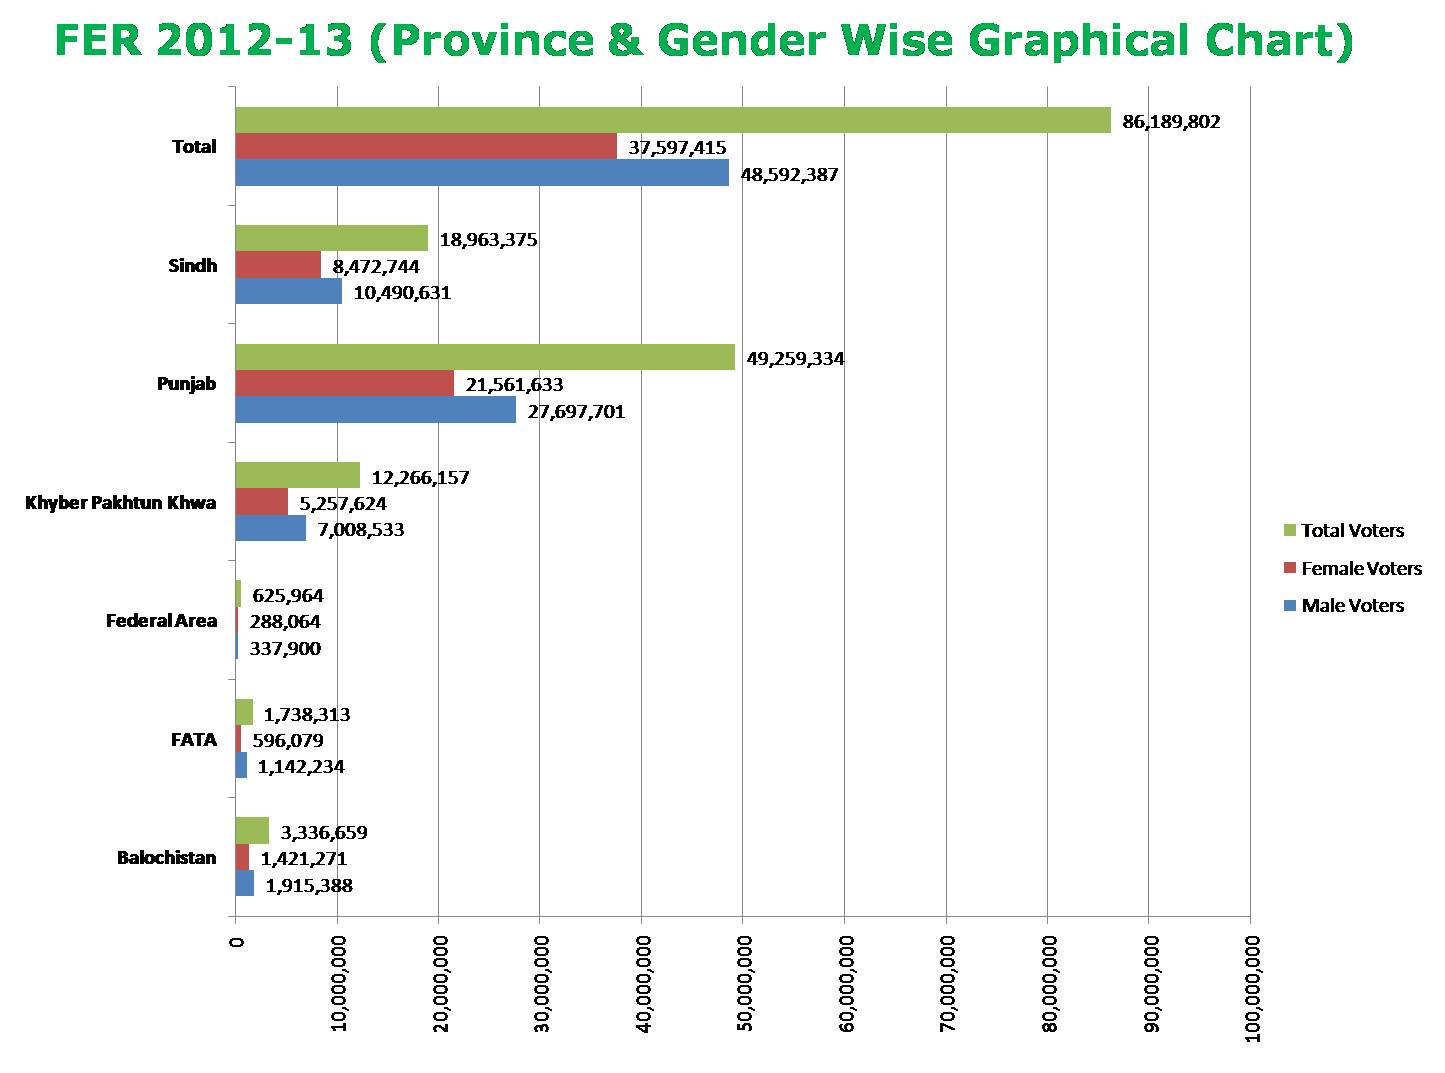 FER 2012 & 2013 Province & Gender wise Graphical Chart